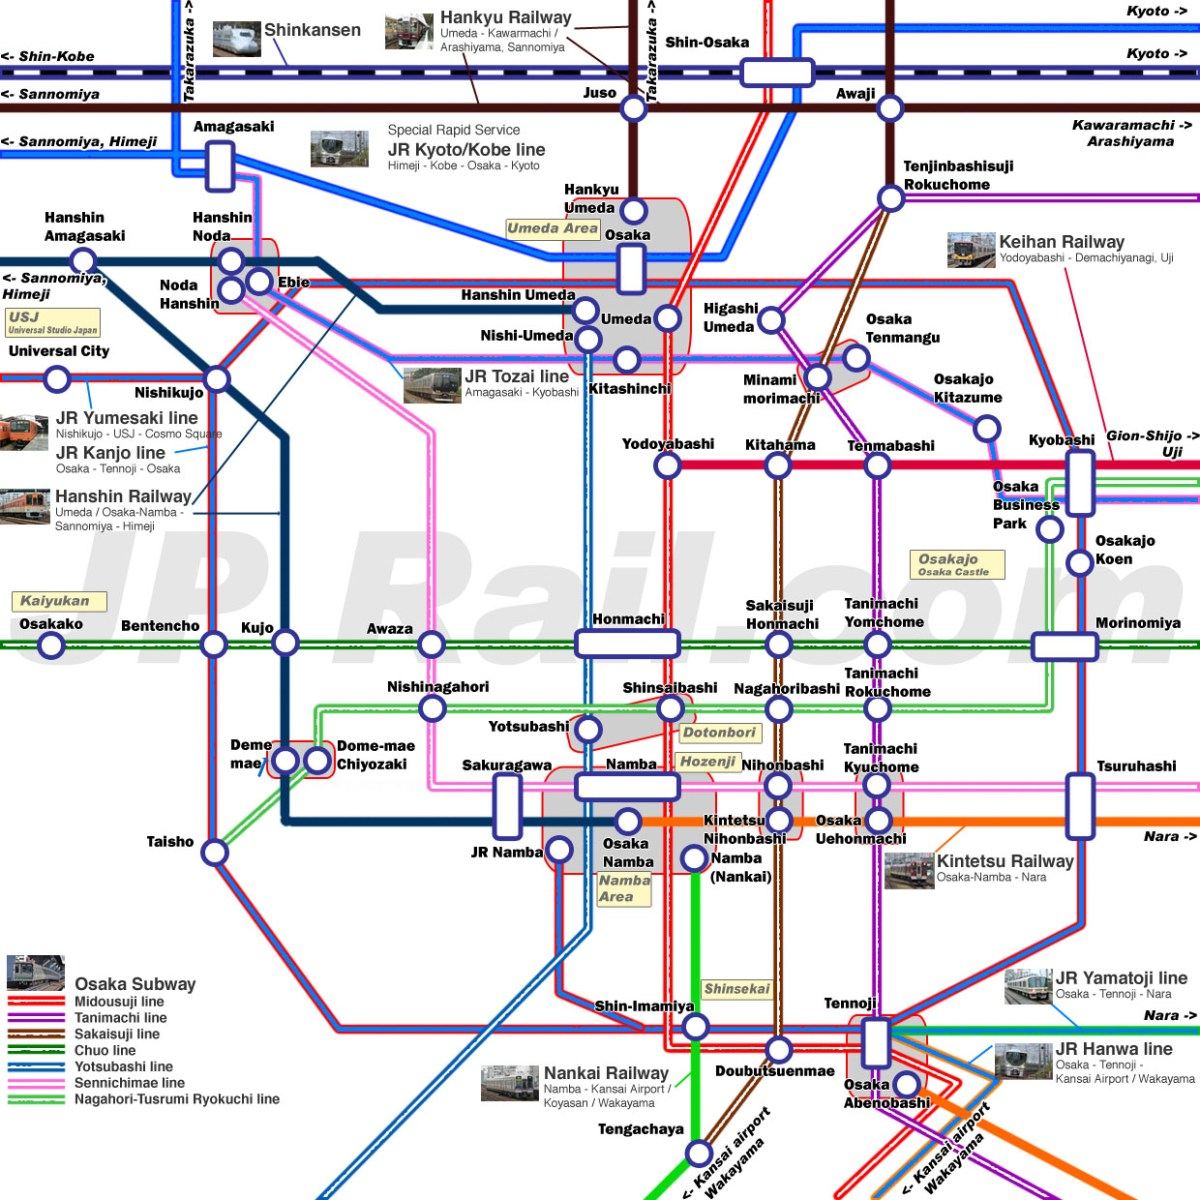 Guide to take trains in Osaka. How to choose the best route by train to get the major spots?